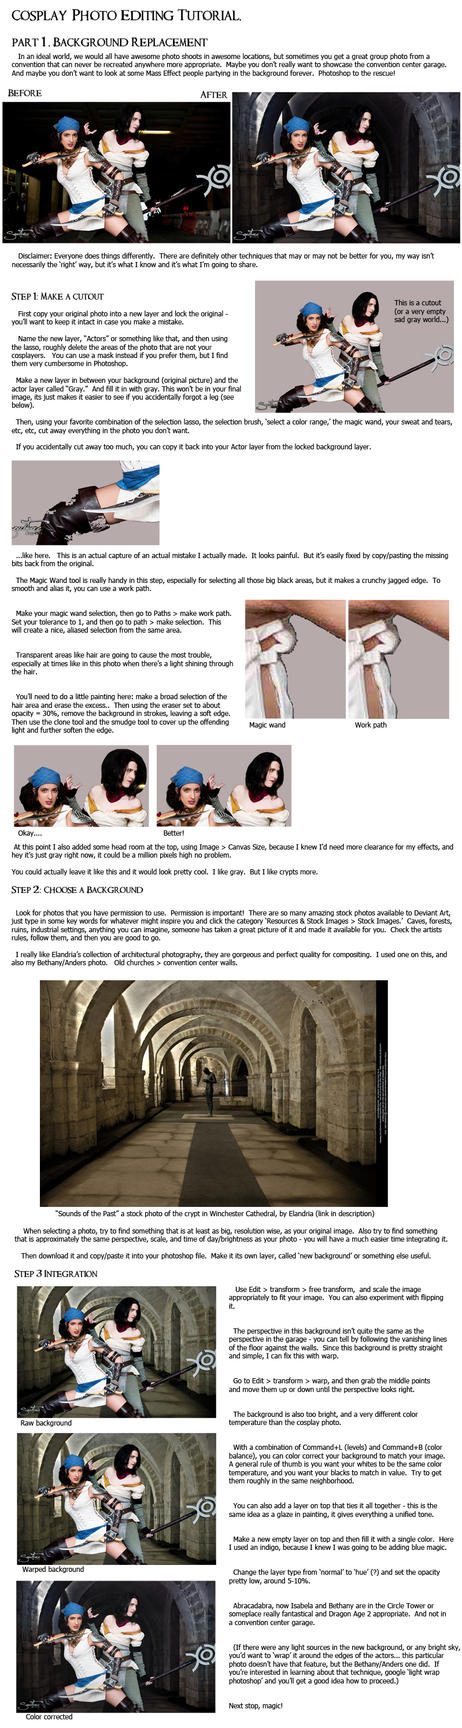 Cosplay PS Tutorial, p1: Background Replacement by jancola